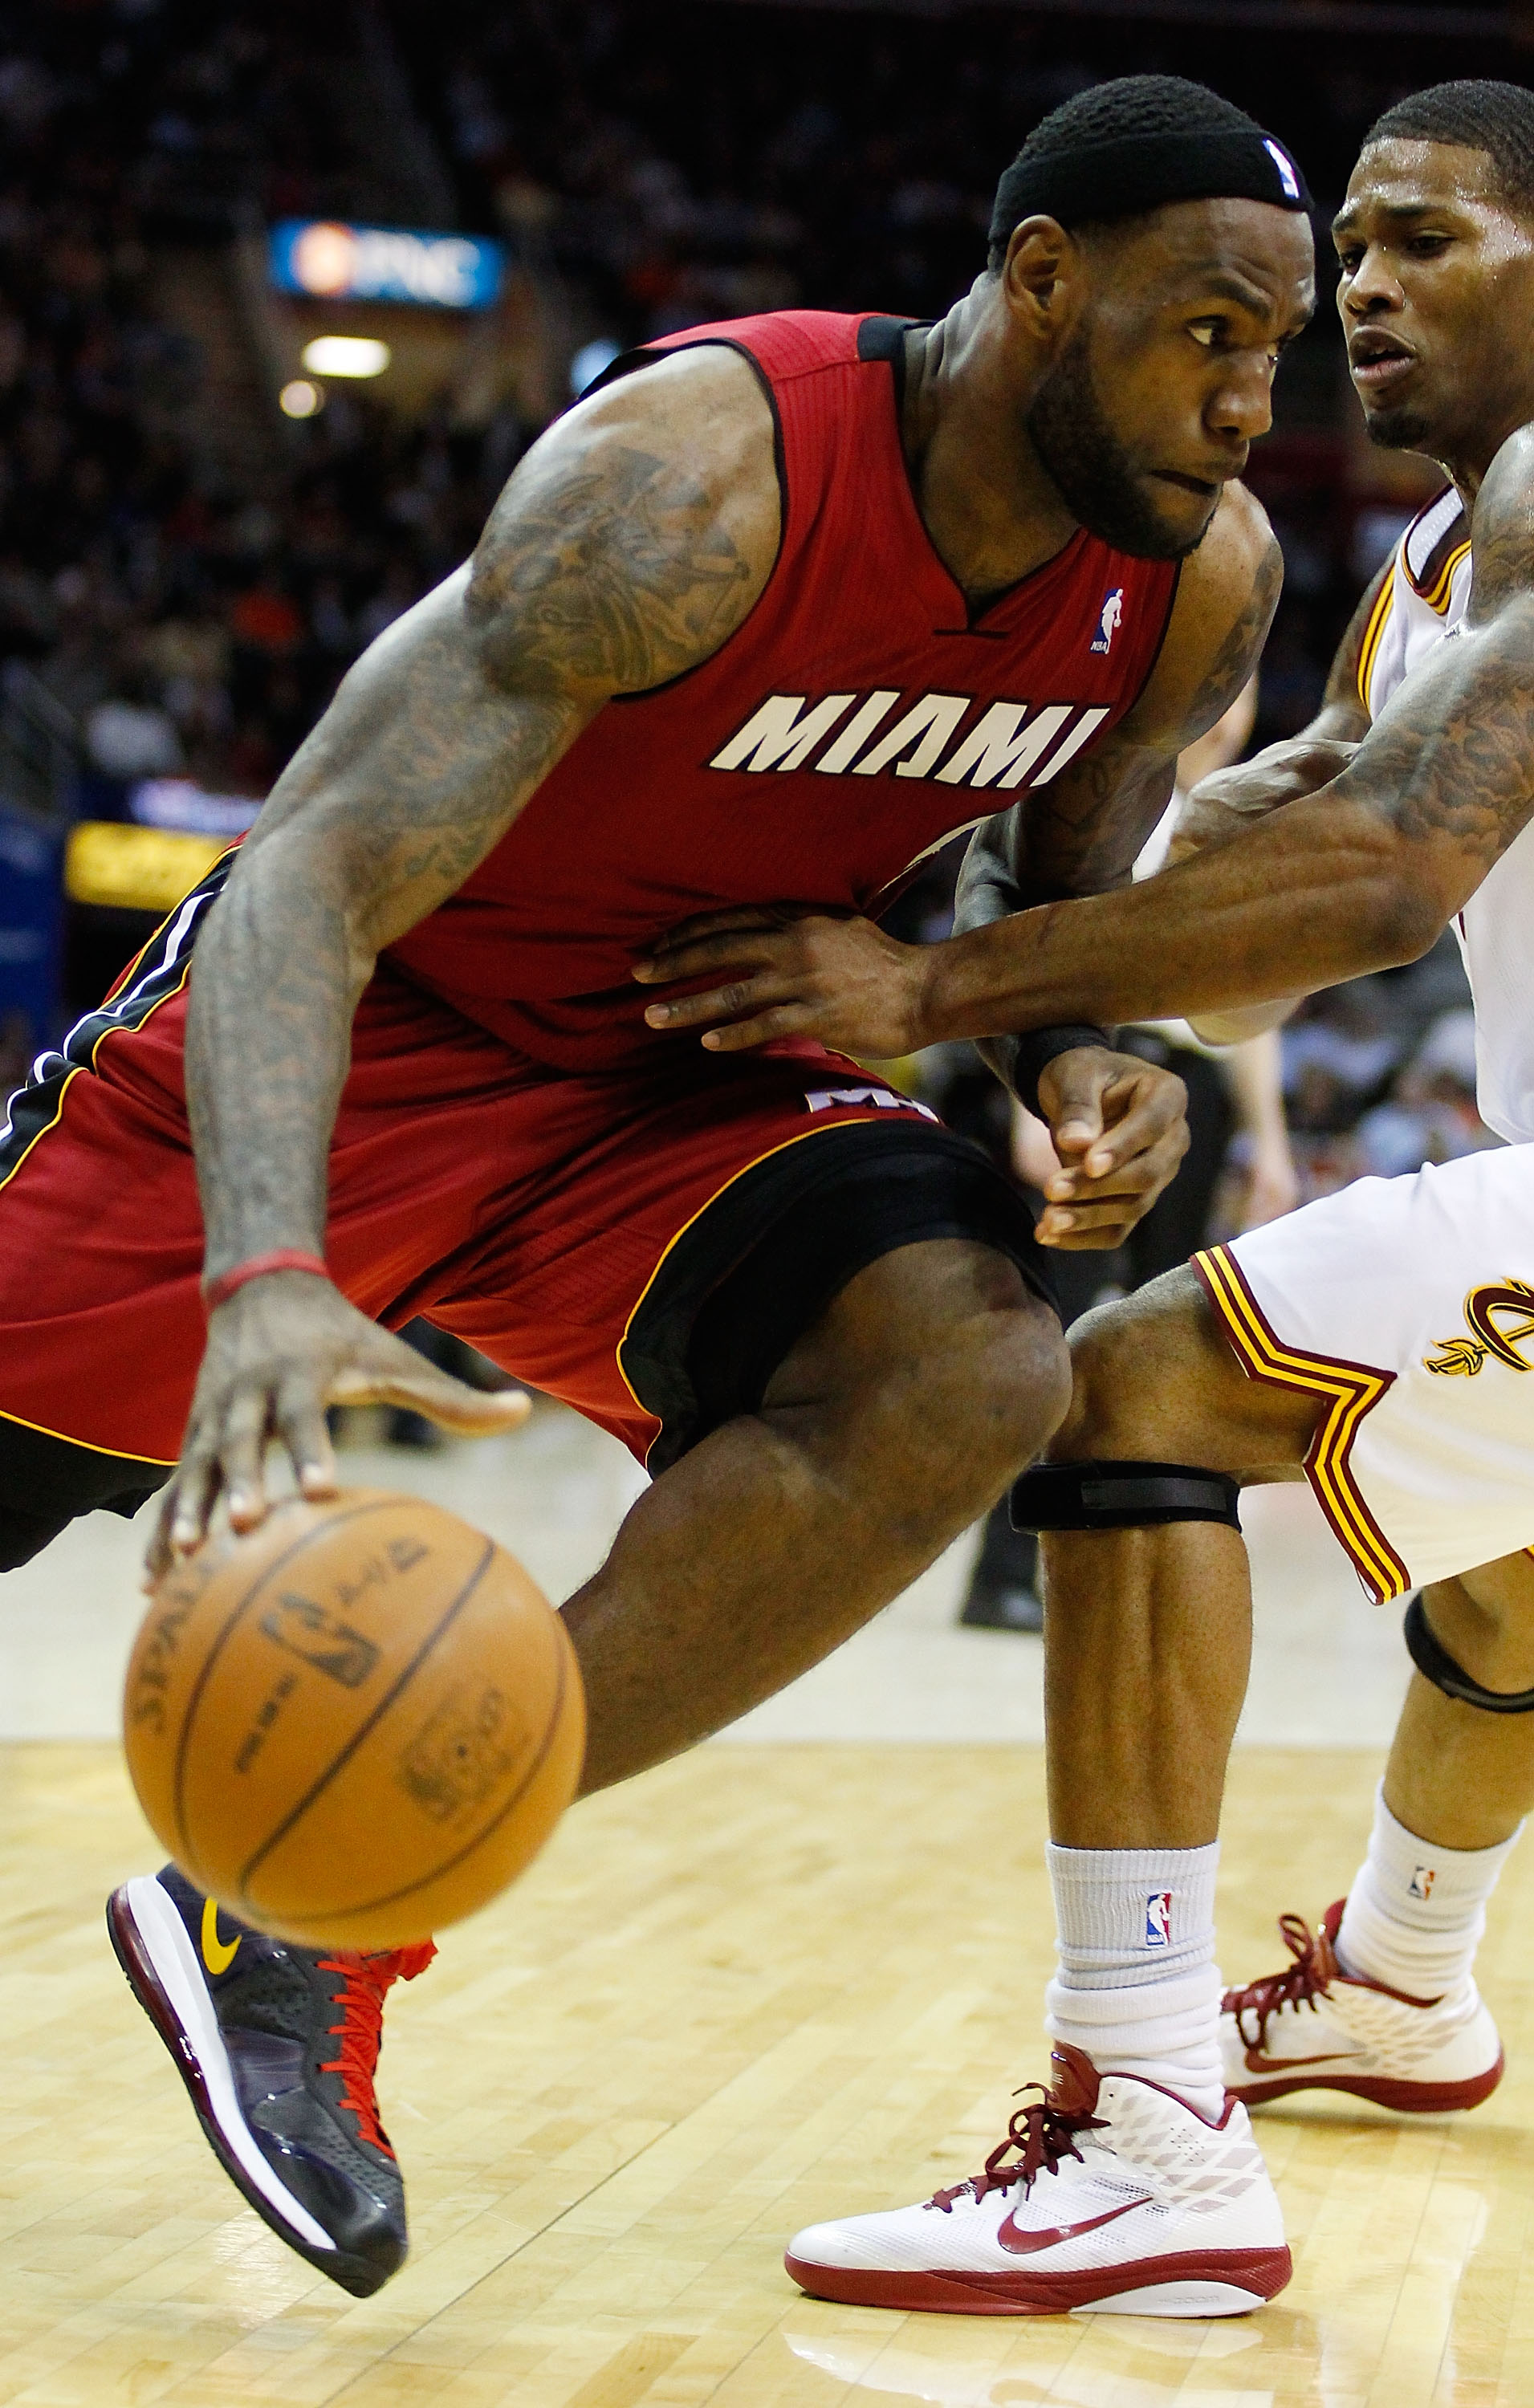 CLEVELAND - MARCH 29:  LeBron James #6 of the Miami Heat drives to the basket during the game against the Cleveland Cavaliers on March 29, 2011 at Quicken Loans Arena in Cleveland, Ohio. NOTE TO USER: User expressly acknowledges and agrees that, by downlo